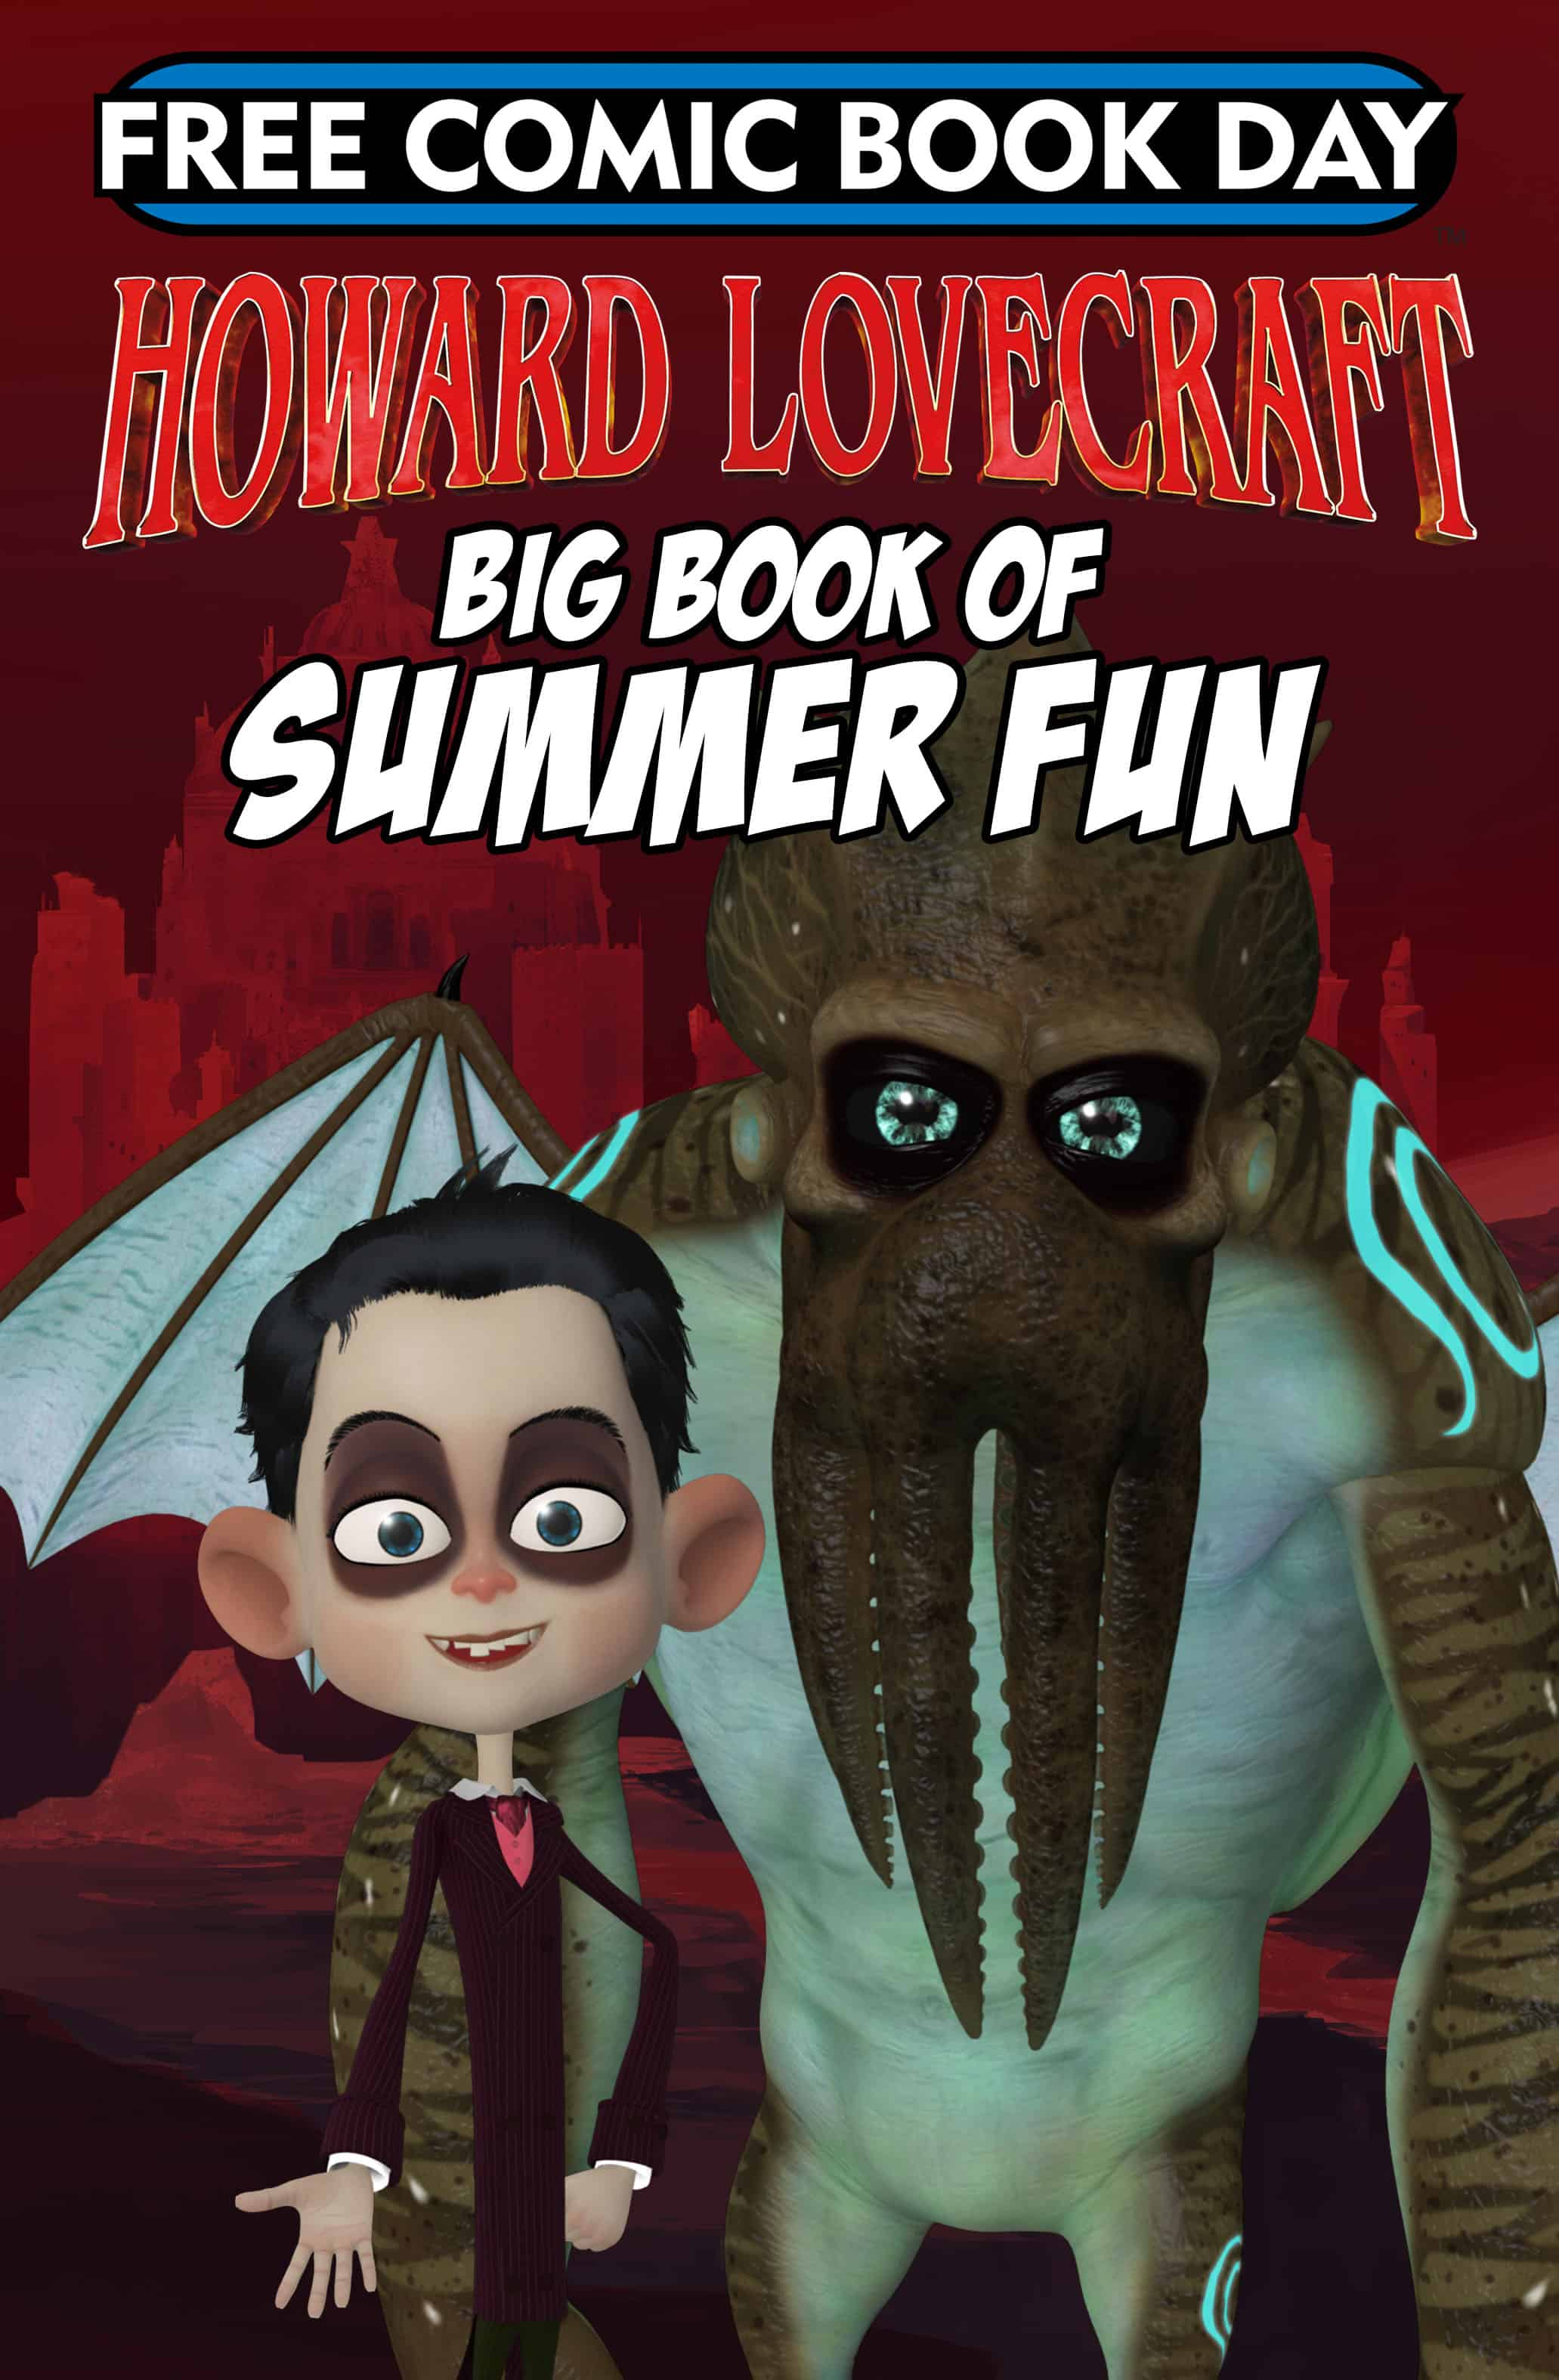 ASP_2018-HowardLovecraft_SummerFun-1